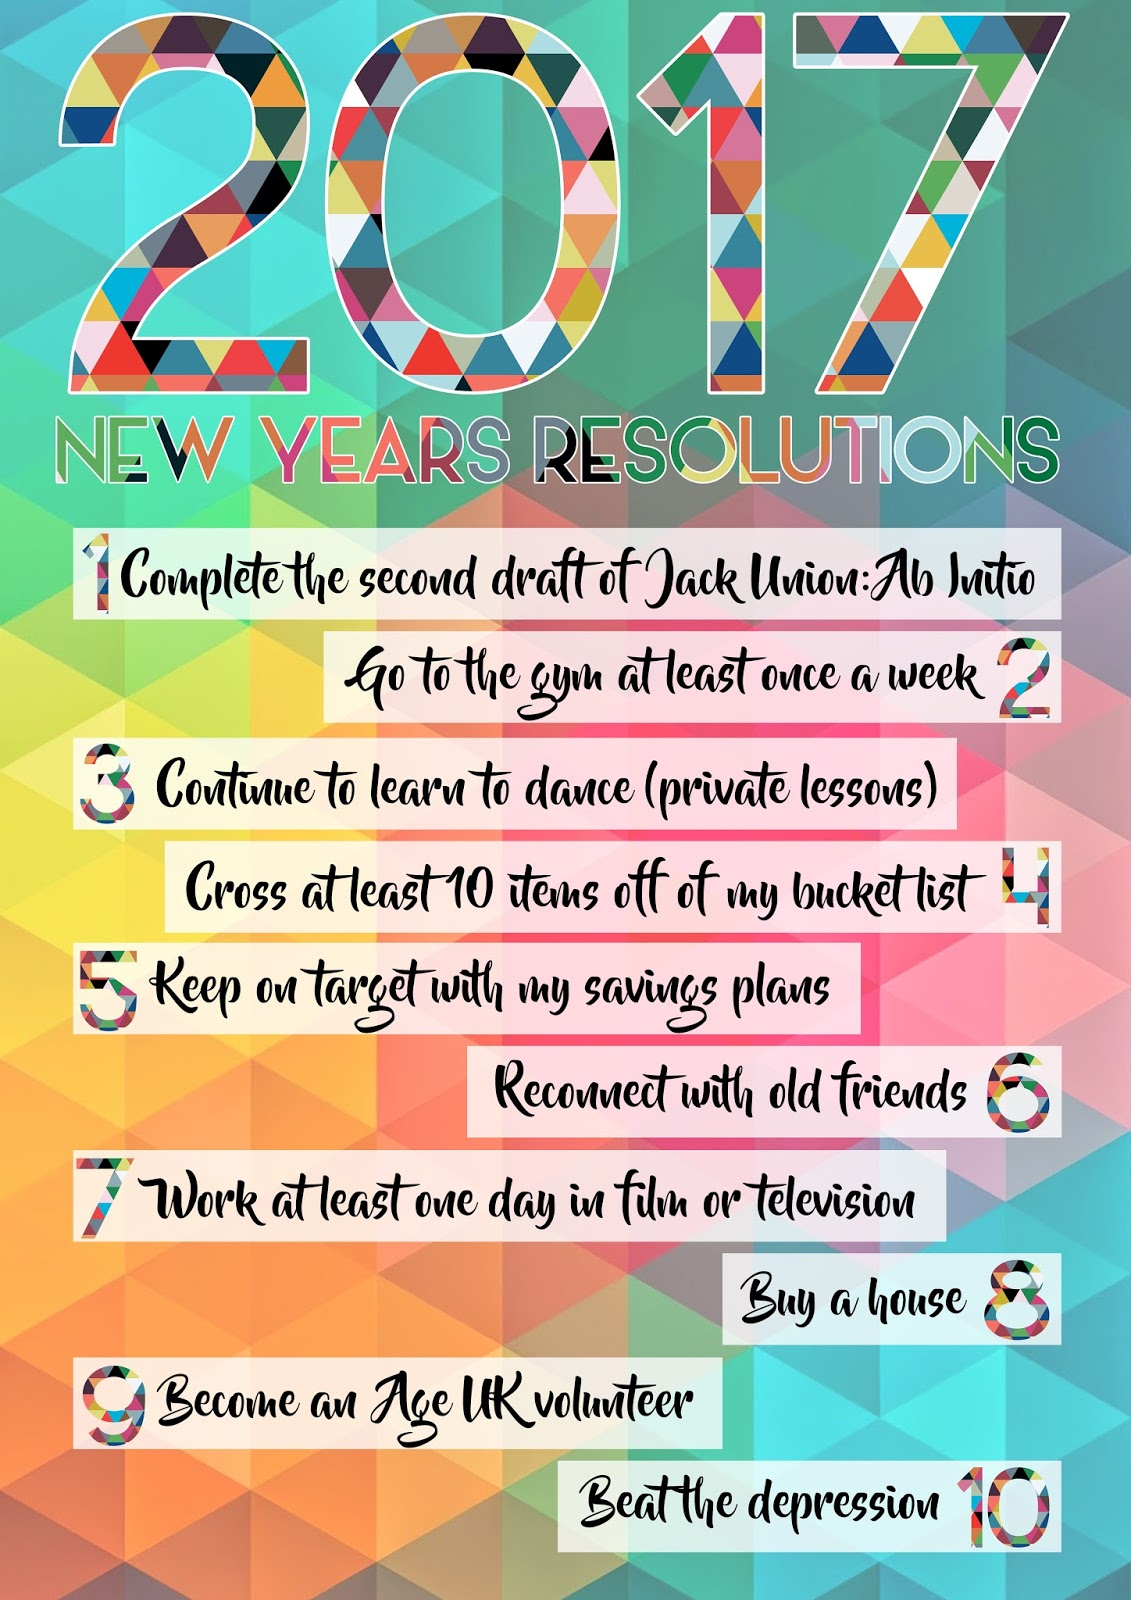 photo 10 Reasons Why New Year's Resolutions Fail